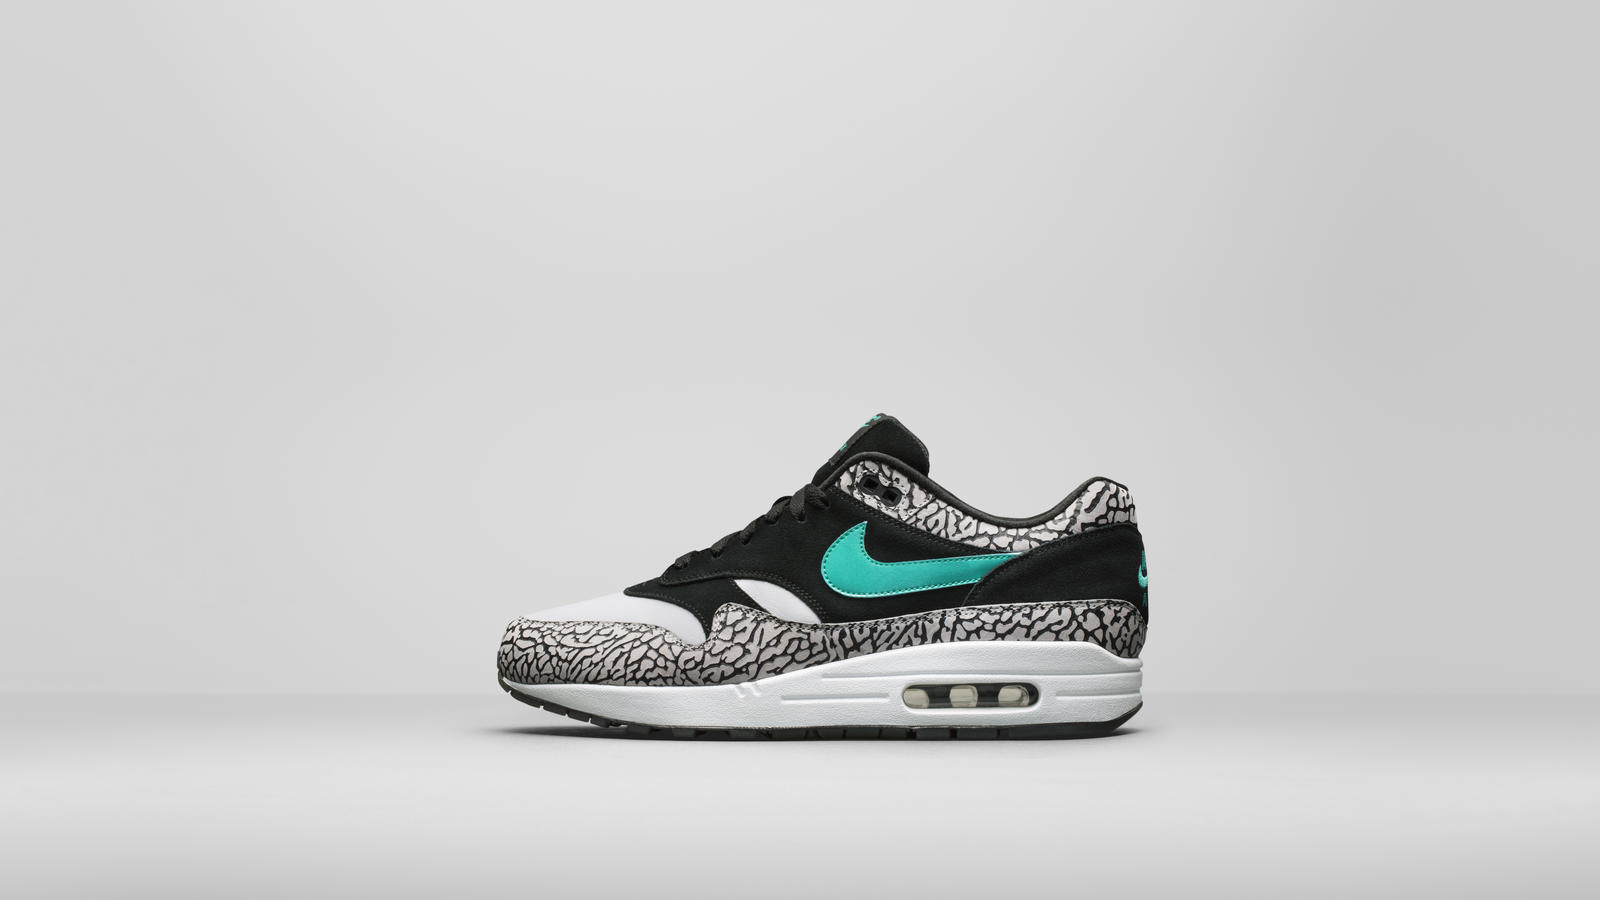 3b7662af13eb6c The Nike Air Max 1 was first conceived as a performance shoe. This should  be obvious